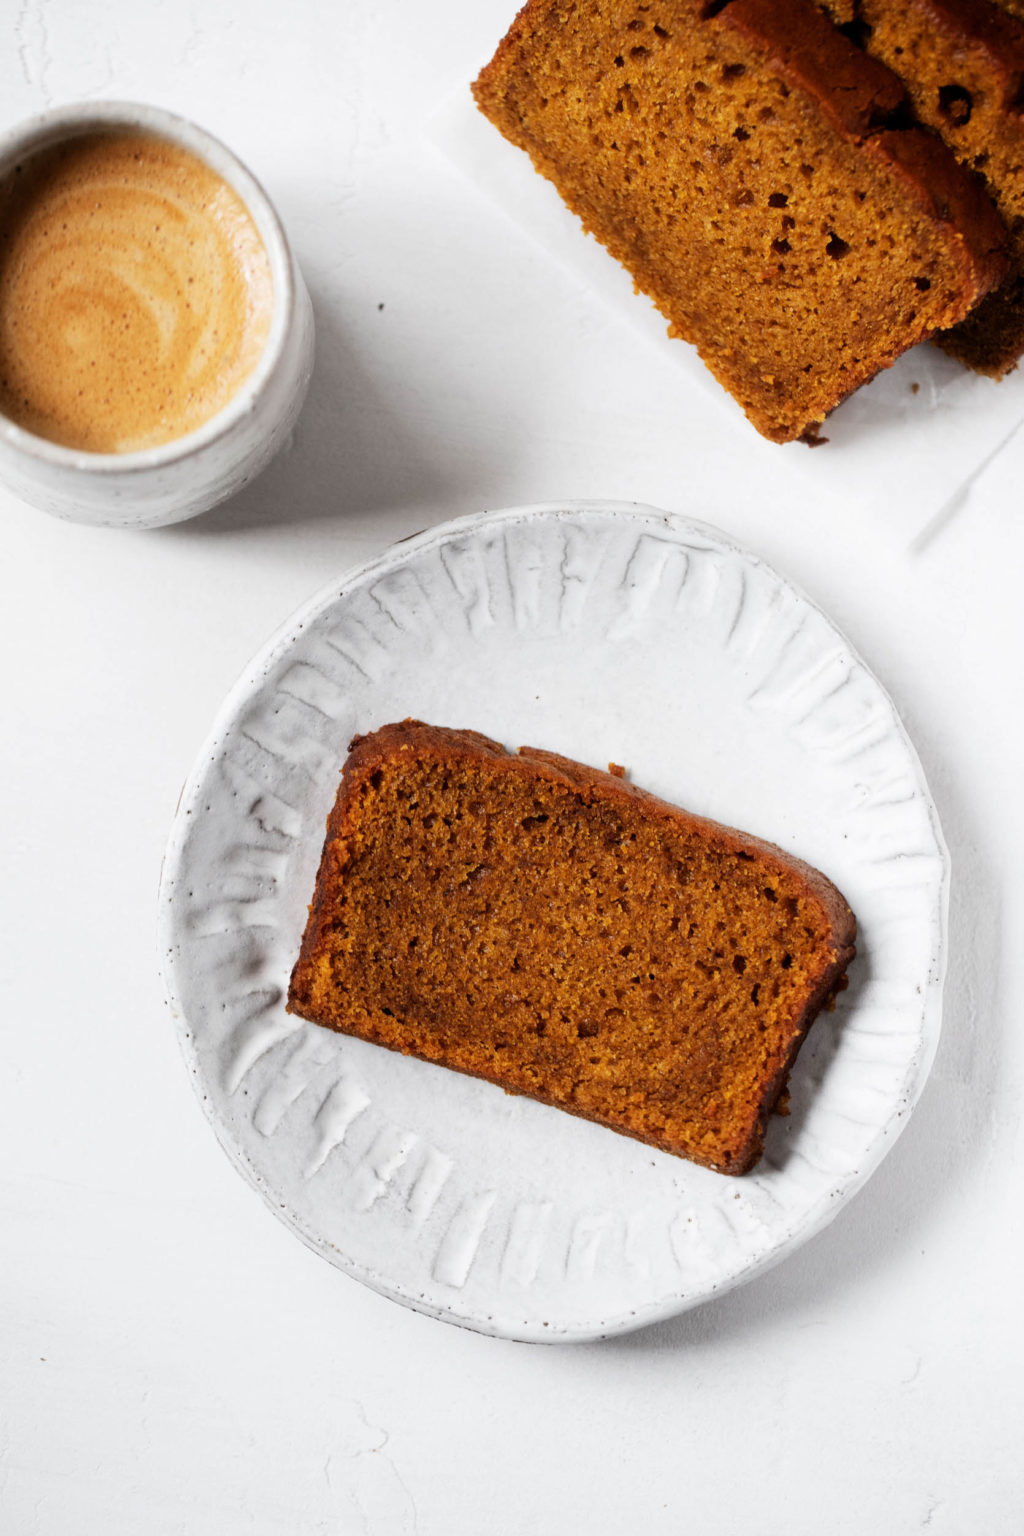 An overhead shot of a slice of vegan pumpkin bread, served with a warm latte.